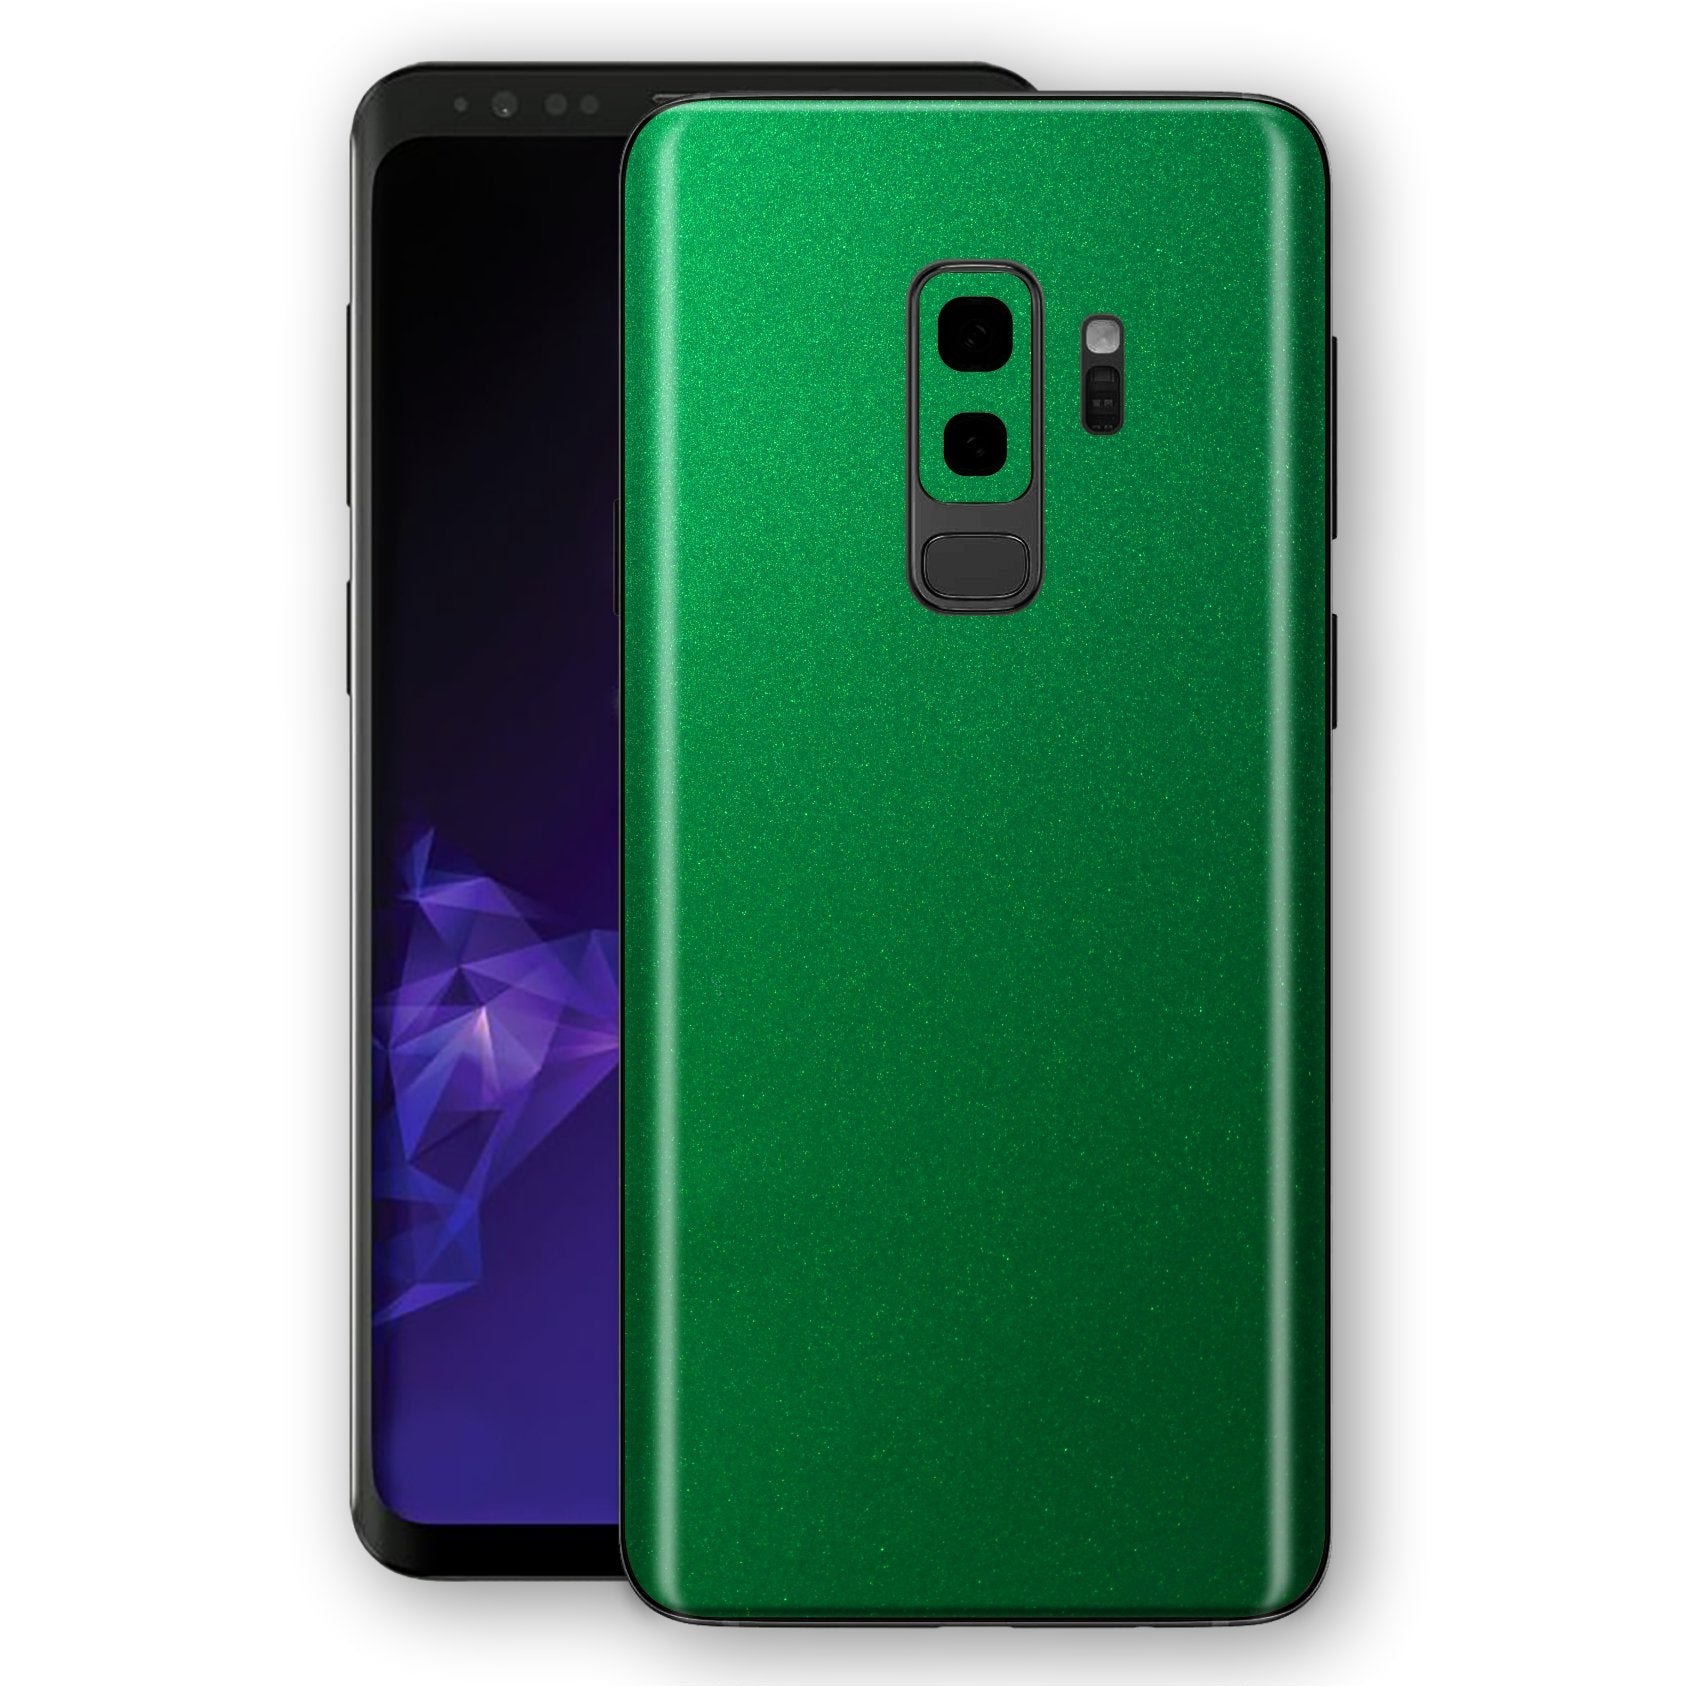 Samsung GALAXY S9+ PLUS Viper Green Tuning Metallic Skin, Decal, Wrap, Protector, Cover by EasySkinz | EasySkinz.com